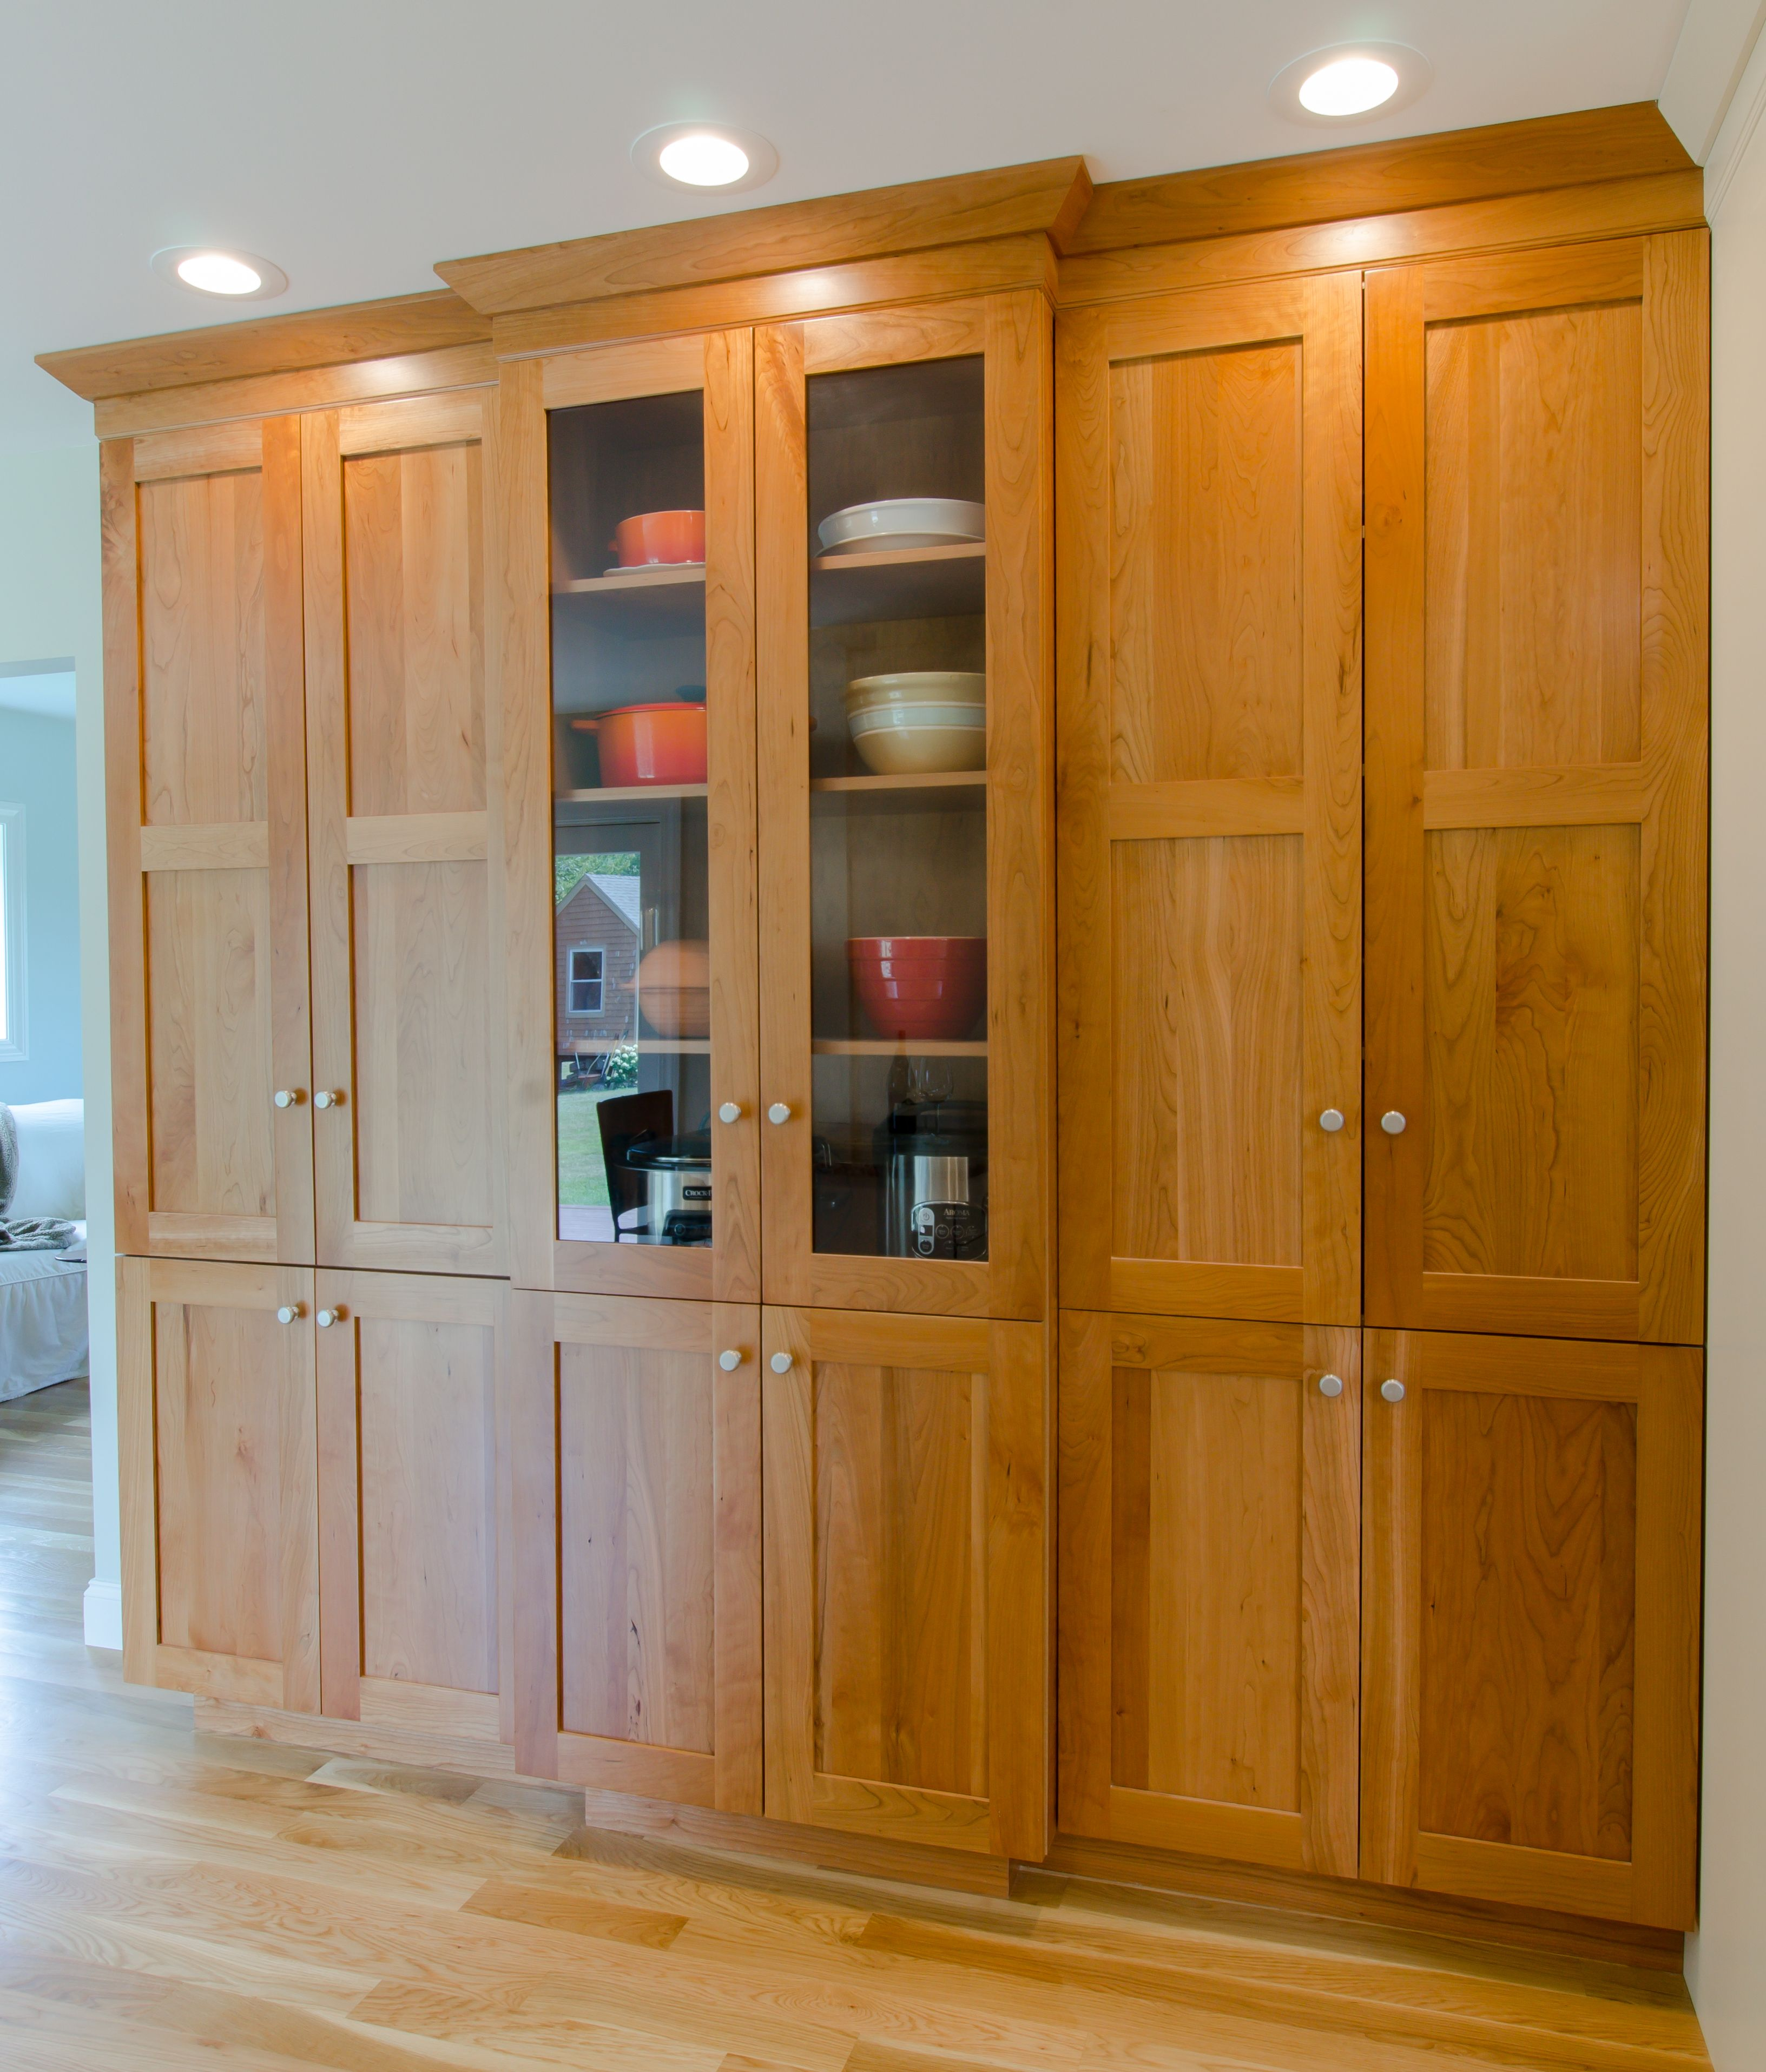 Kitchen pantry large pantry cabinet in natural cherry with glass cabinets in the middle